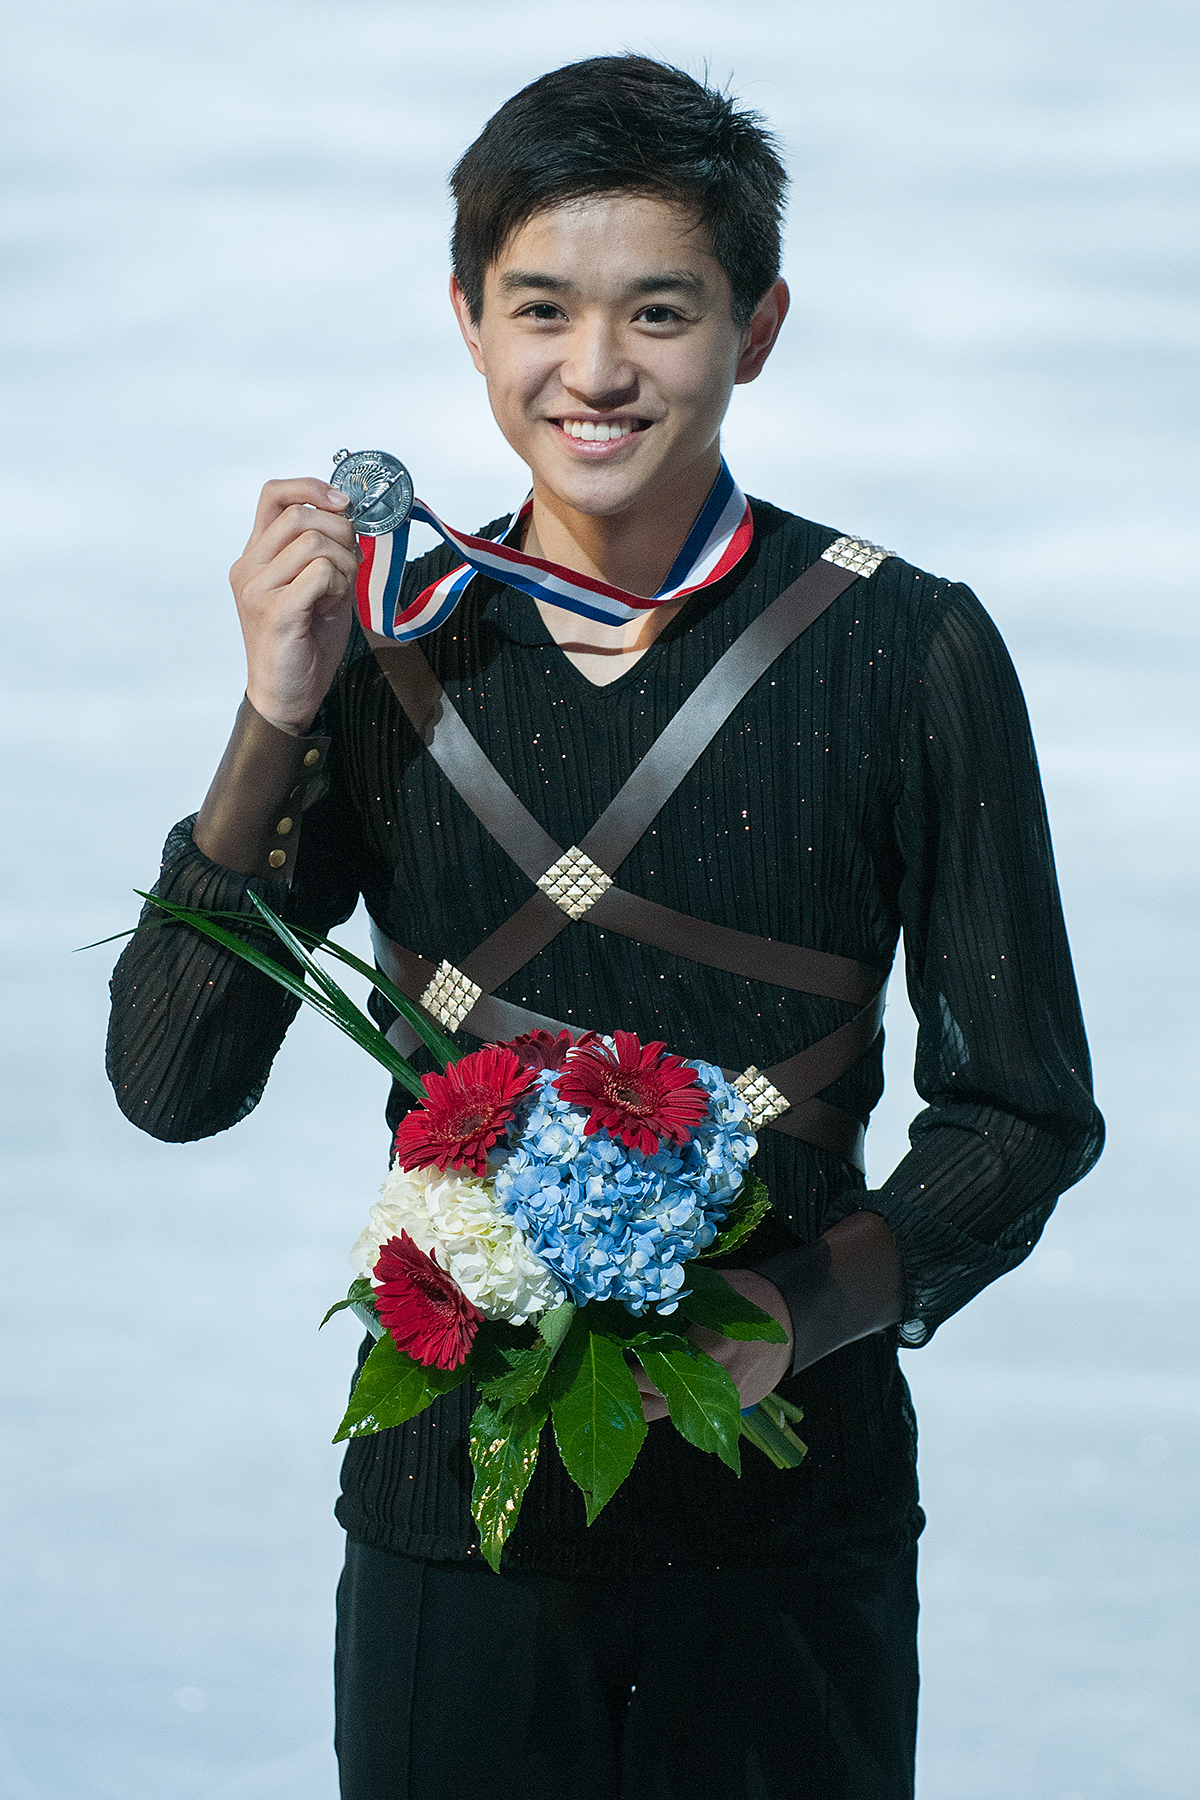 Kevin with his silver medal at the 2015 US Championships